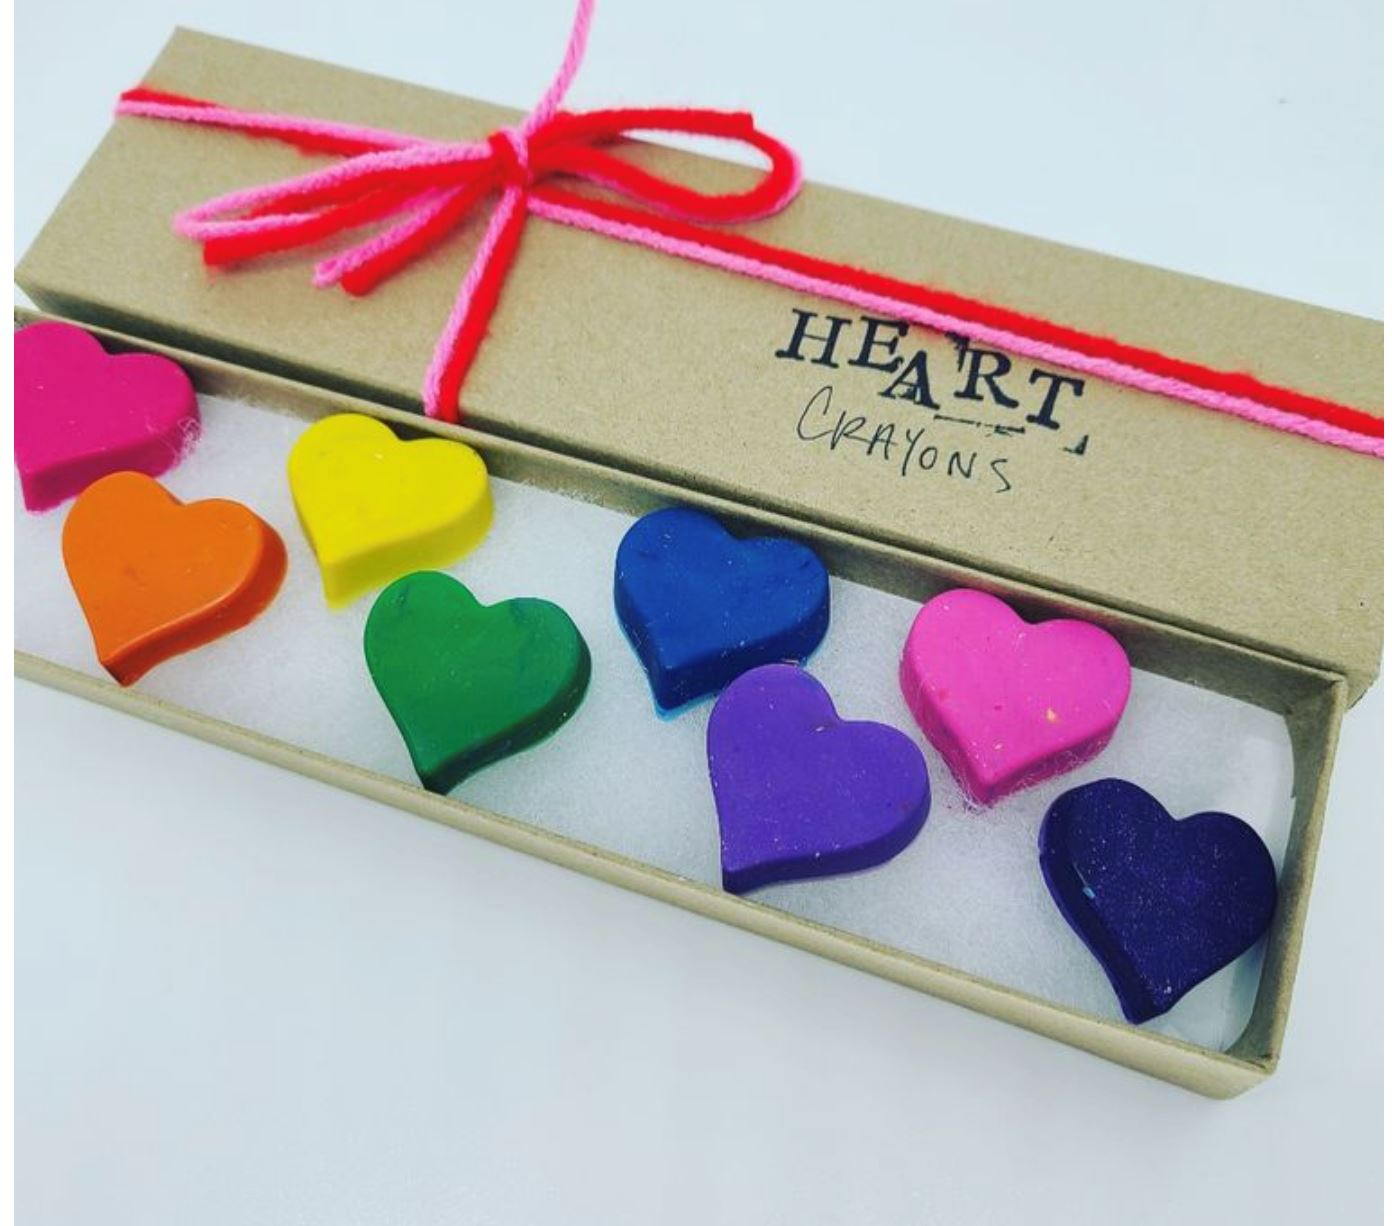 Assorted Crayon Boxes Carefree Highway Heart